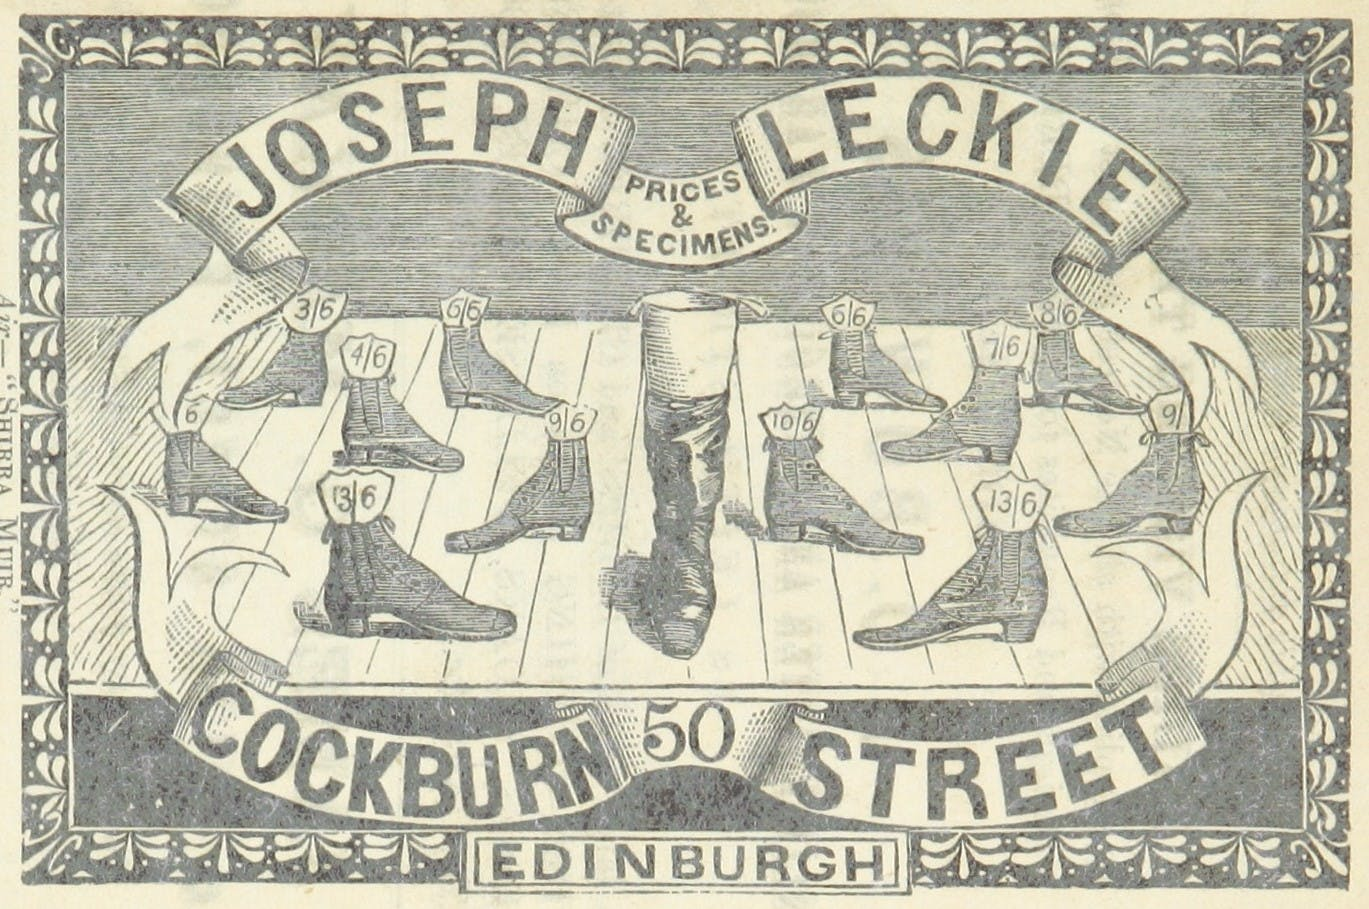 An old, black-and-white advertisement for shoes made by Joseph Leckie of Edinburgh. There are drawings of shoes with the prices attached, and a banner with the company name and location.